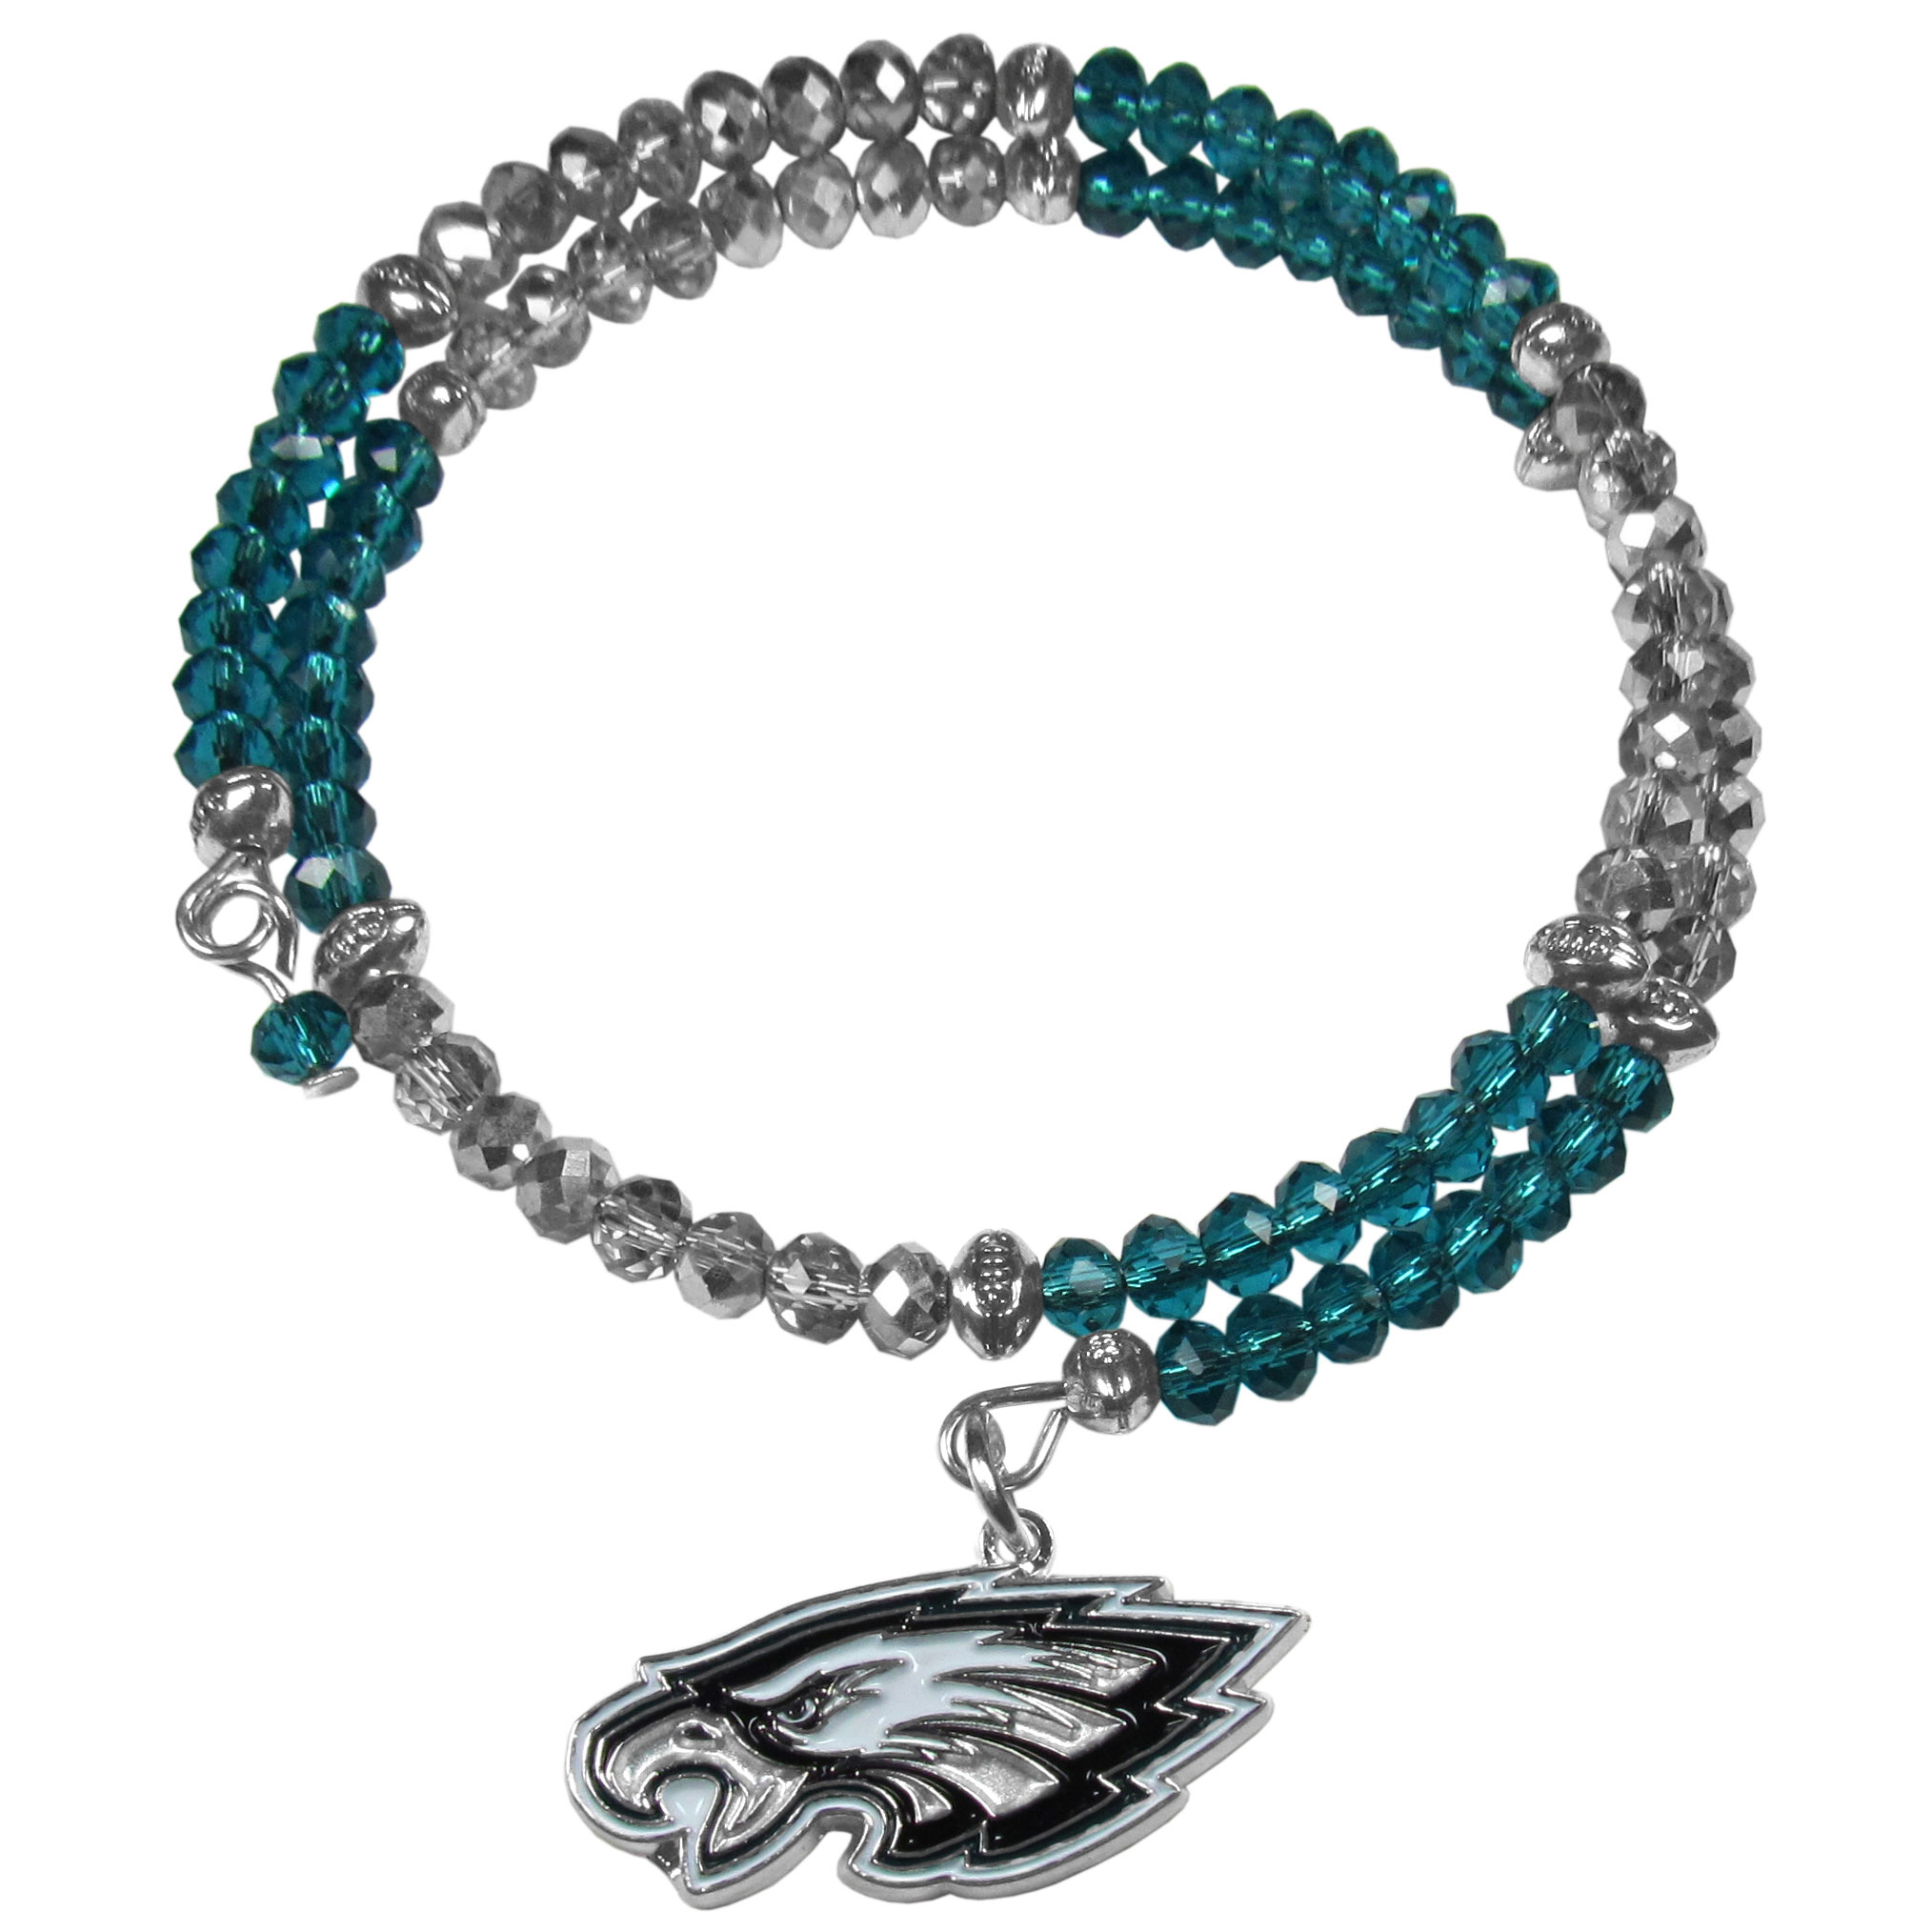 Philadelphia Eagles Crystal Memory Wire Bracelet - Our Philadelphia Eagles memory wire crystal bracelet is trendy way to show off your love of the game. The double wrap bracelet is completely covered in 4 mm crystals that are broken up with adorable football beads creating a designer look with a sporty twist. The bracelet features a fully cast, metal team charm that has expertly enameled team colors. This fashion jewelry piece is a must-have for the die-hard fan that chic look that can dress up any outfit.